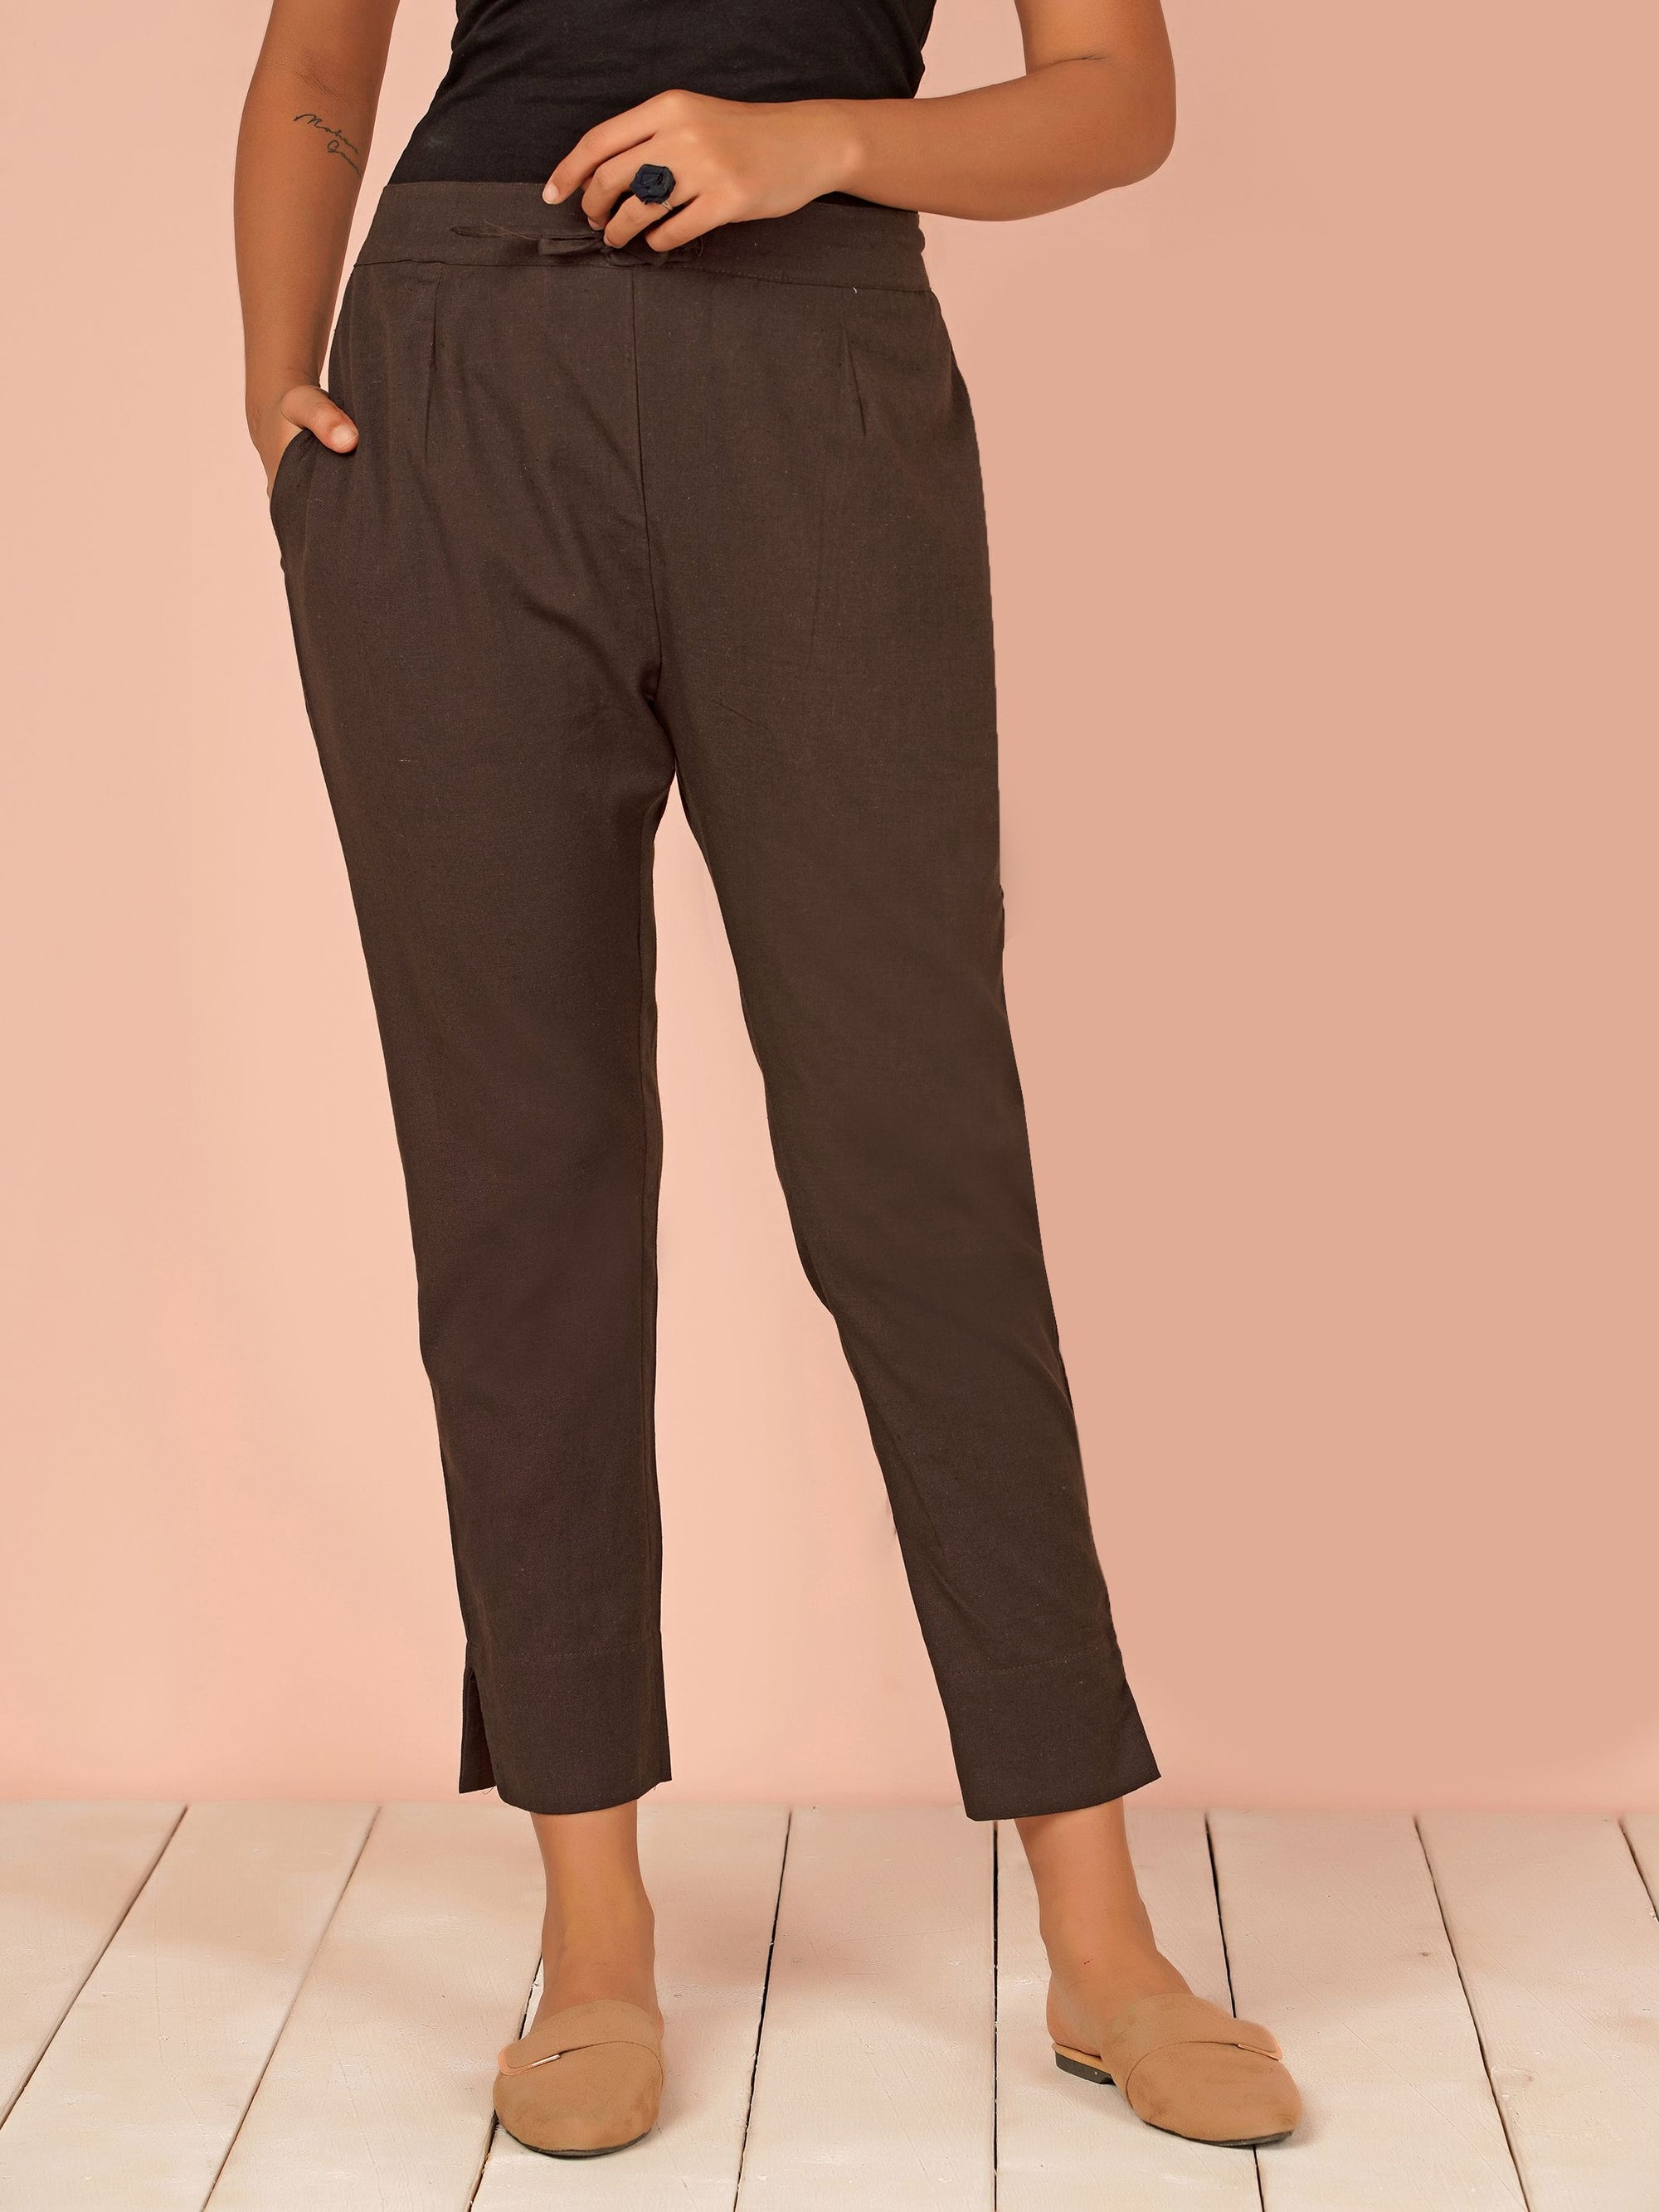 Tapered Cigarette Pants - Brown